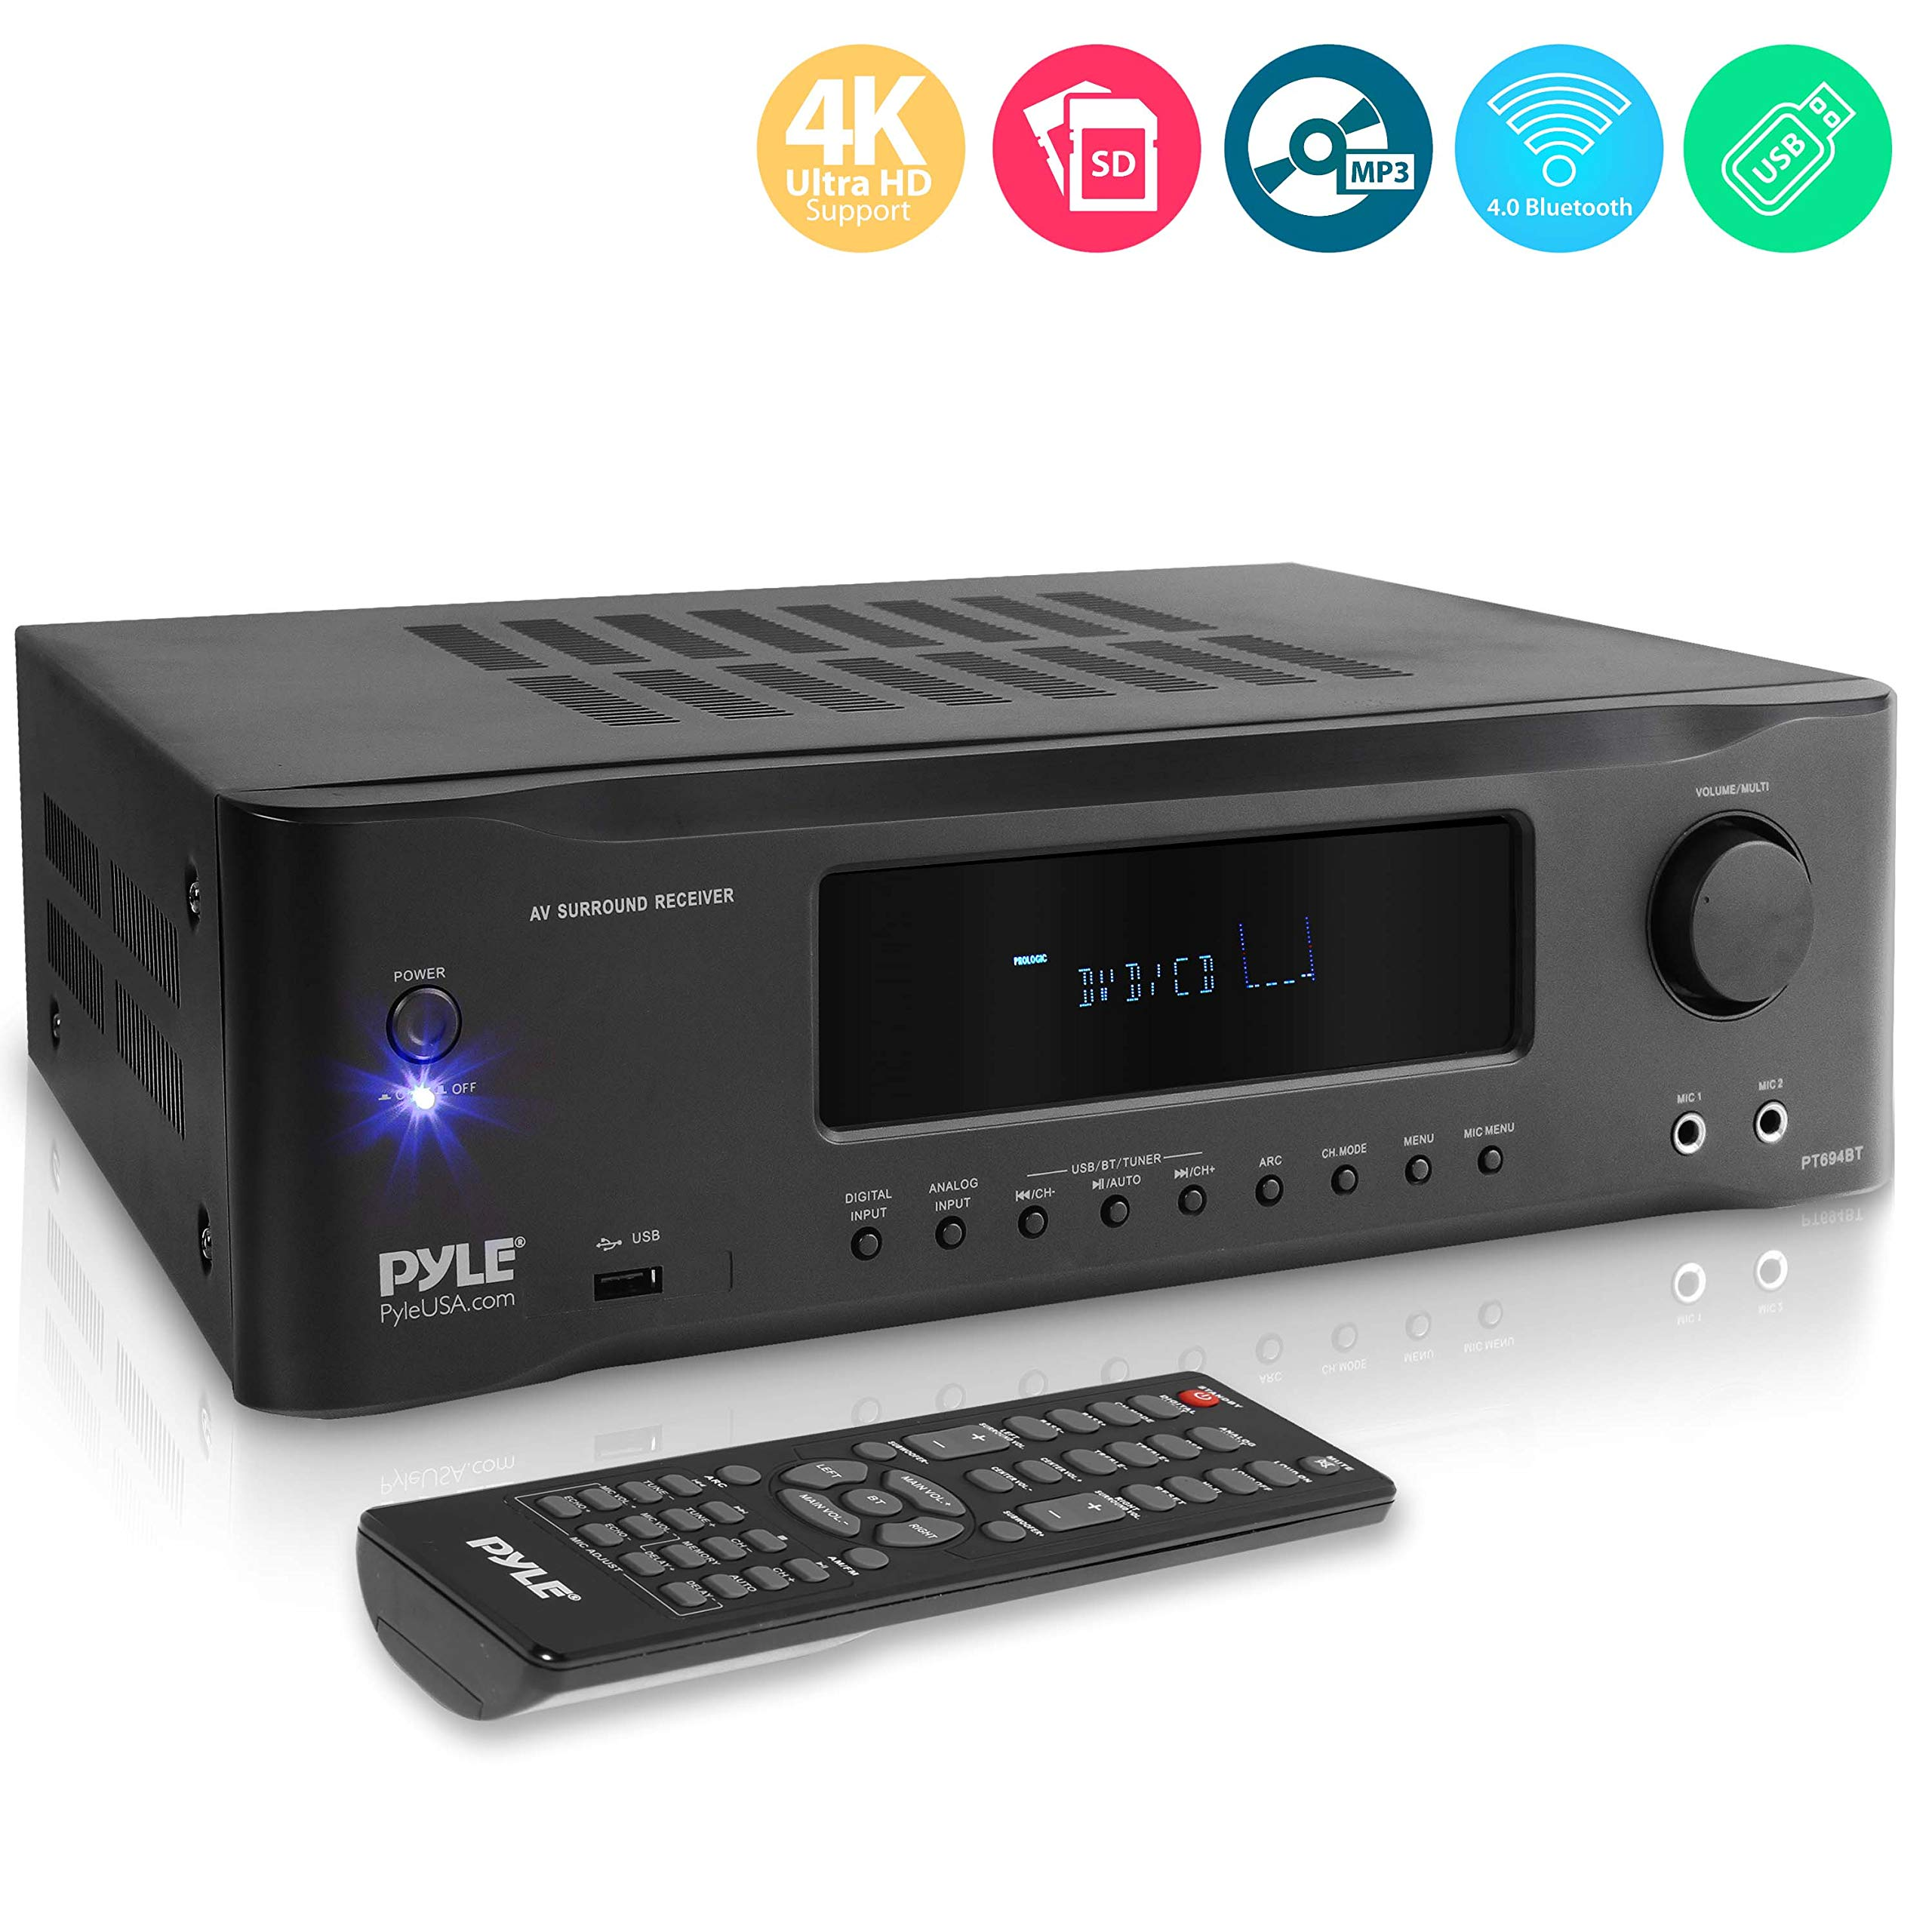 5.2-Channel Hi-Fi Bluetooth Stereo Amplifier - 1000 Watt AV Home Speaker Subwoofer Sound Receiver W/Radio, USB, RCA, HDMI, Mic in, Wireless Streaming, Supports 4K UHD TV, 3D, Blu-Ray - Pyle PT694BT by Pyle